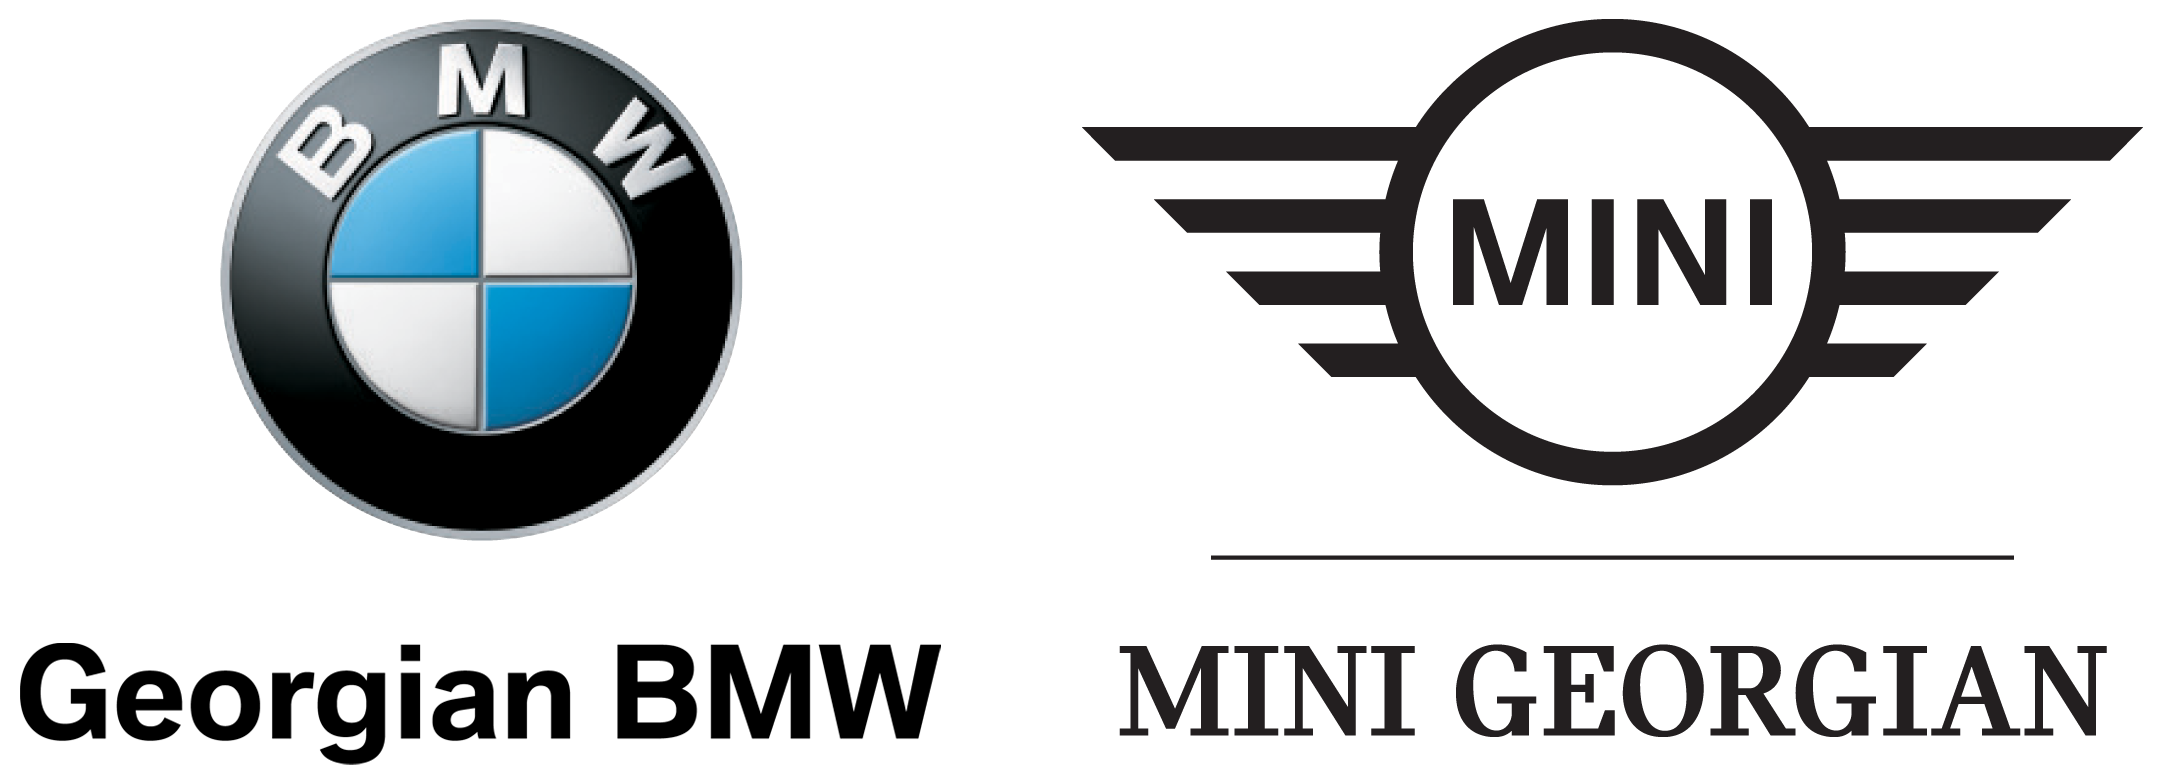 Georgian BMW and MINI Georgian logos